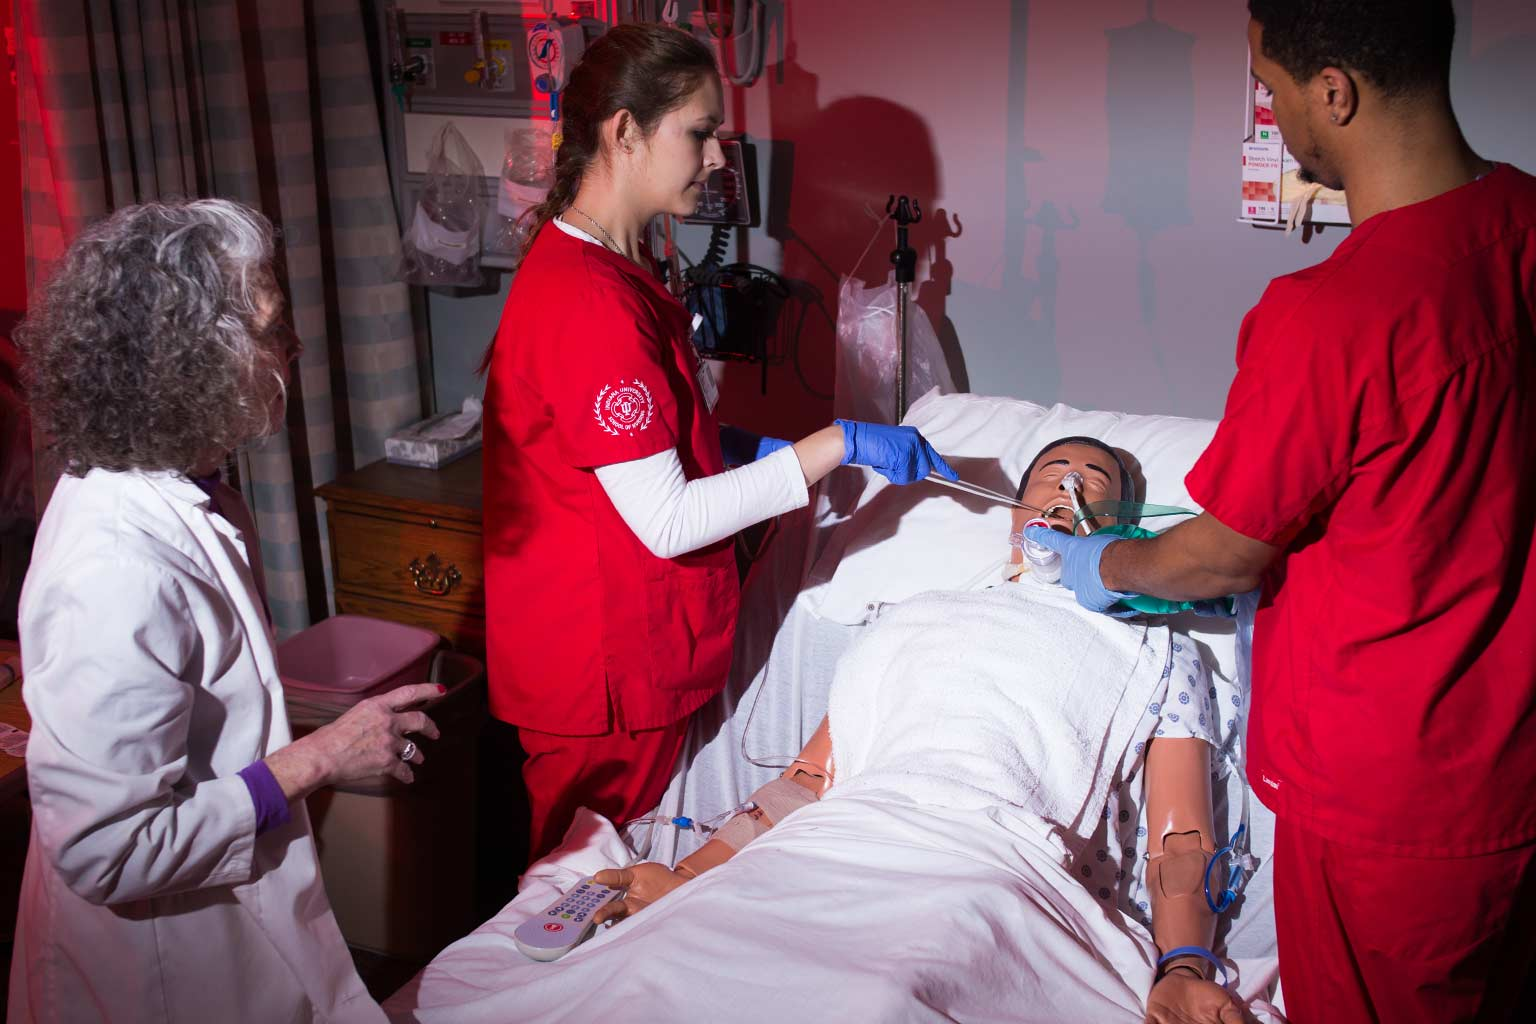 IU nursing students practice patient care skills on a medical manikin while an instructor observes.